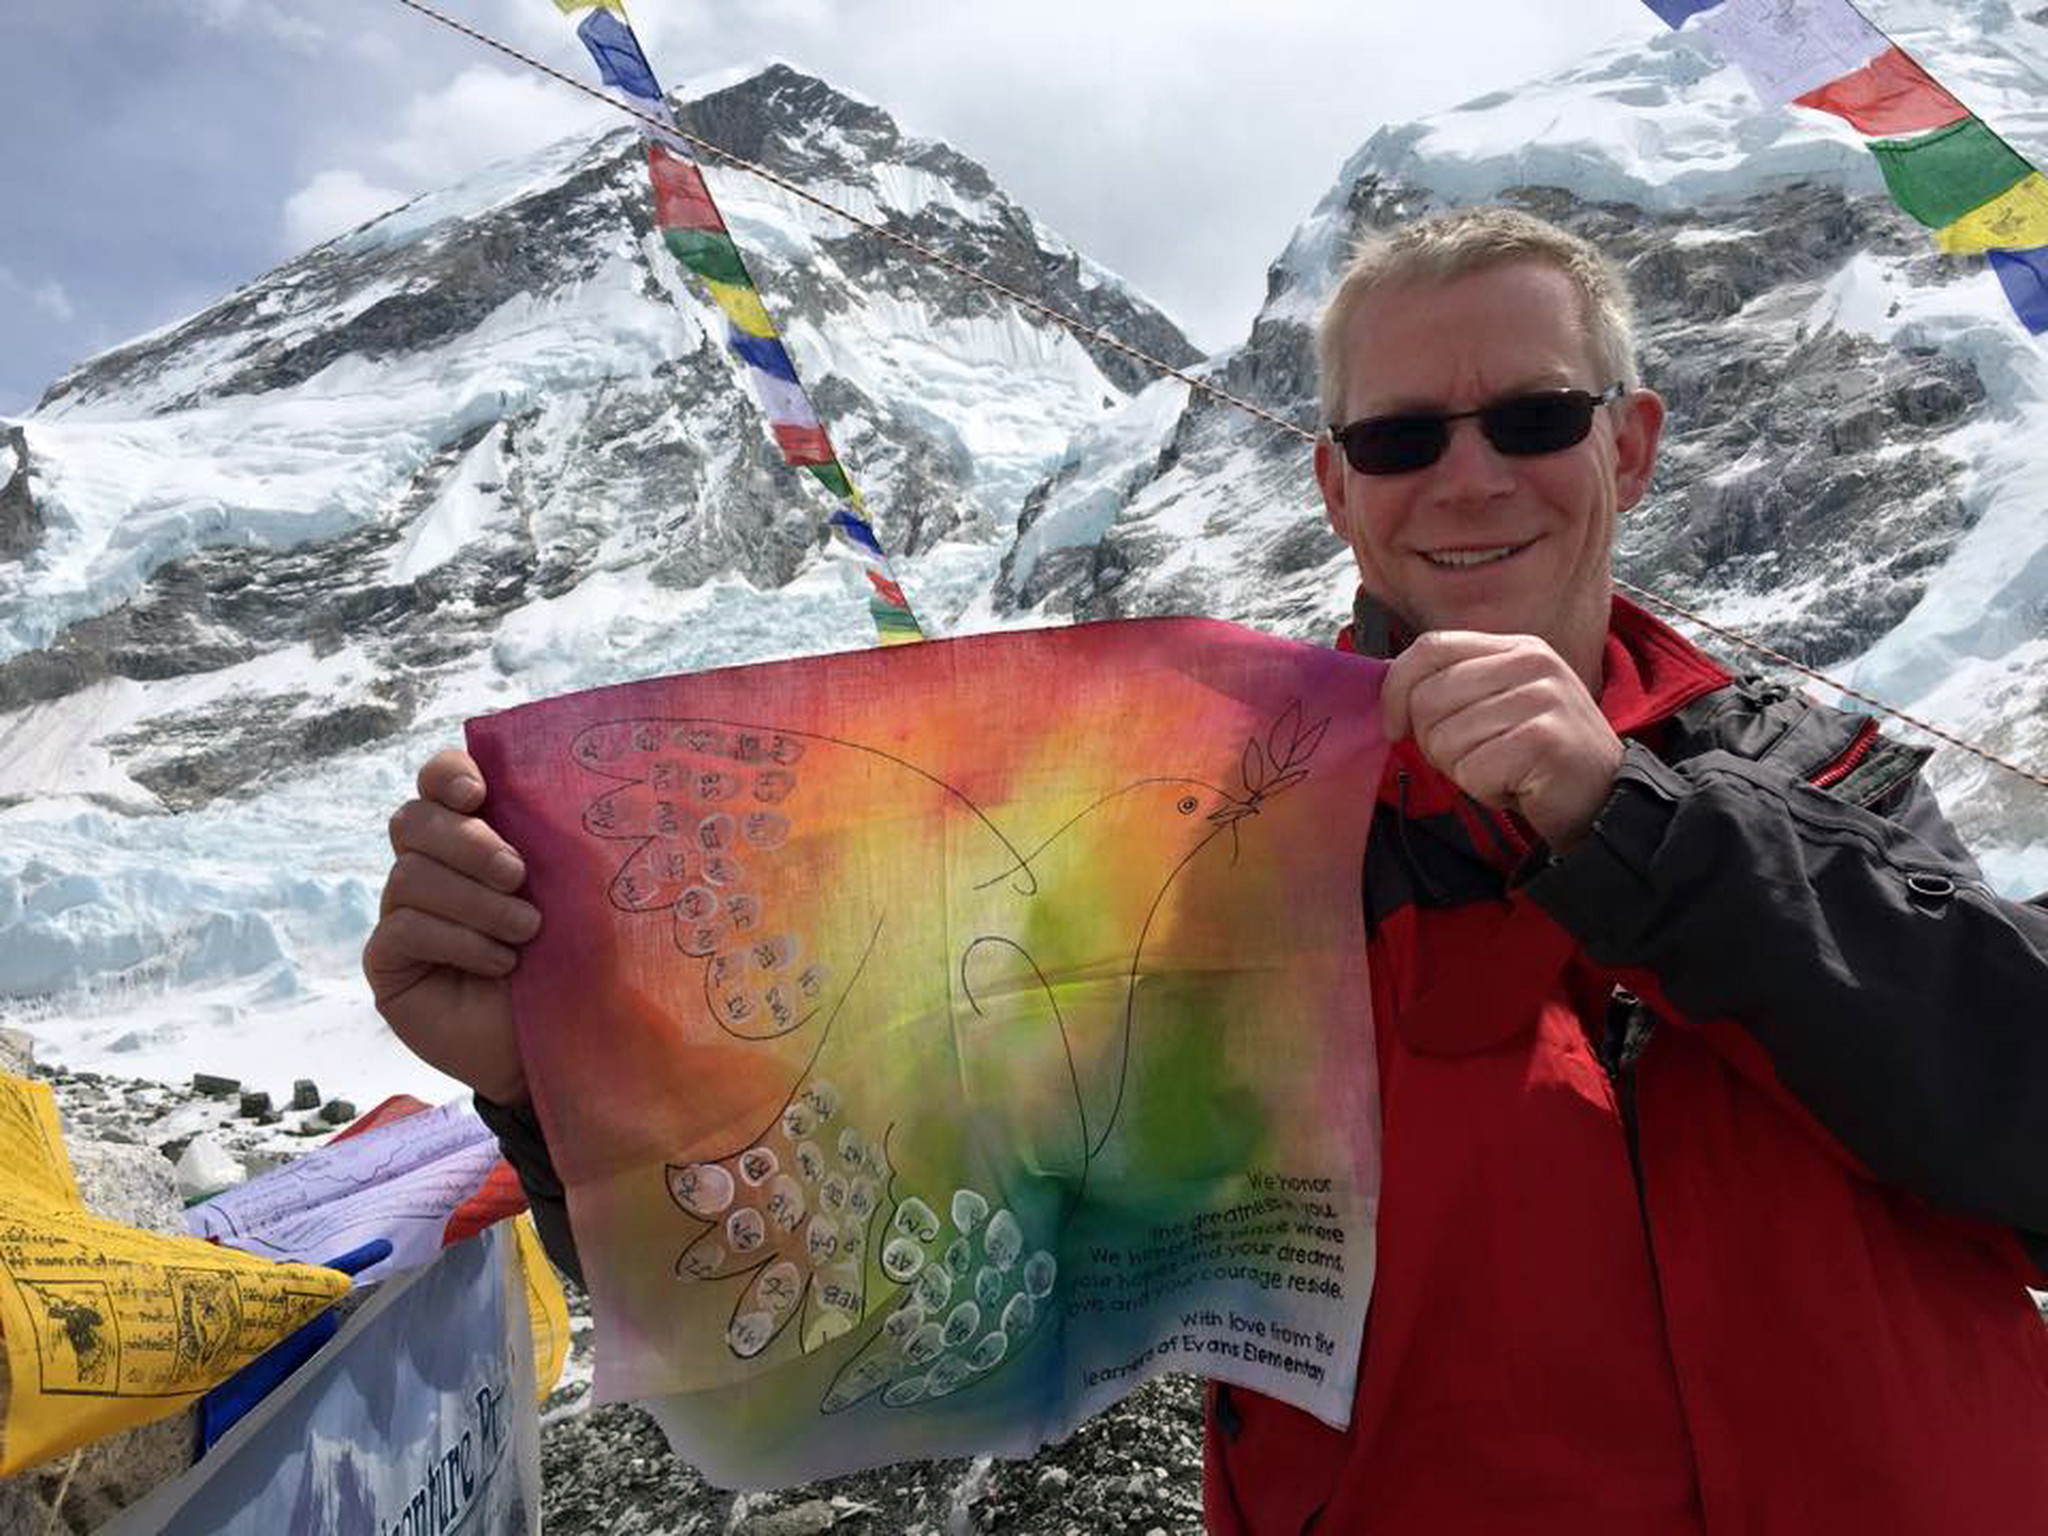 Wisconsin man climbing Everest survives avalanche triggered by Nepal quake